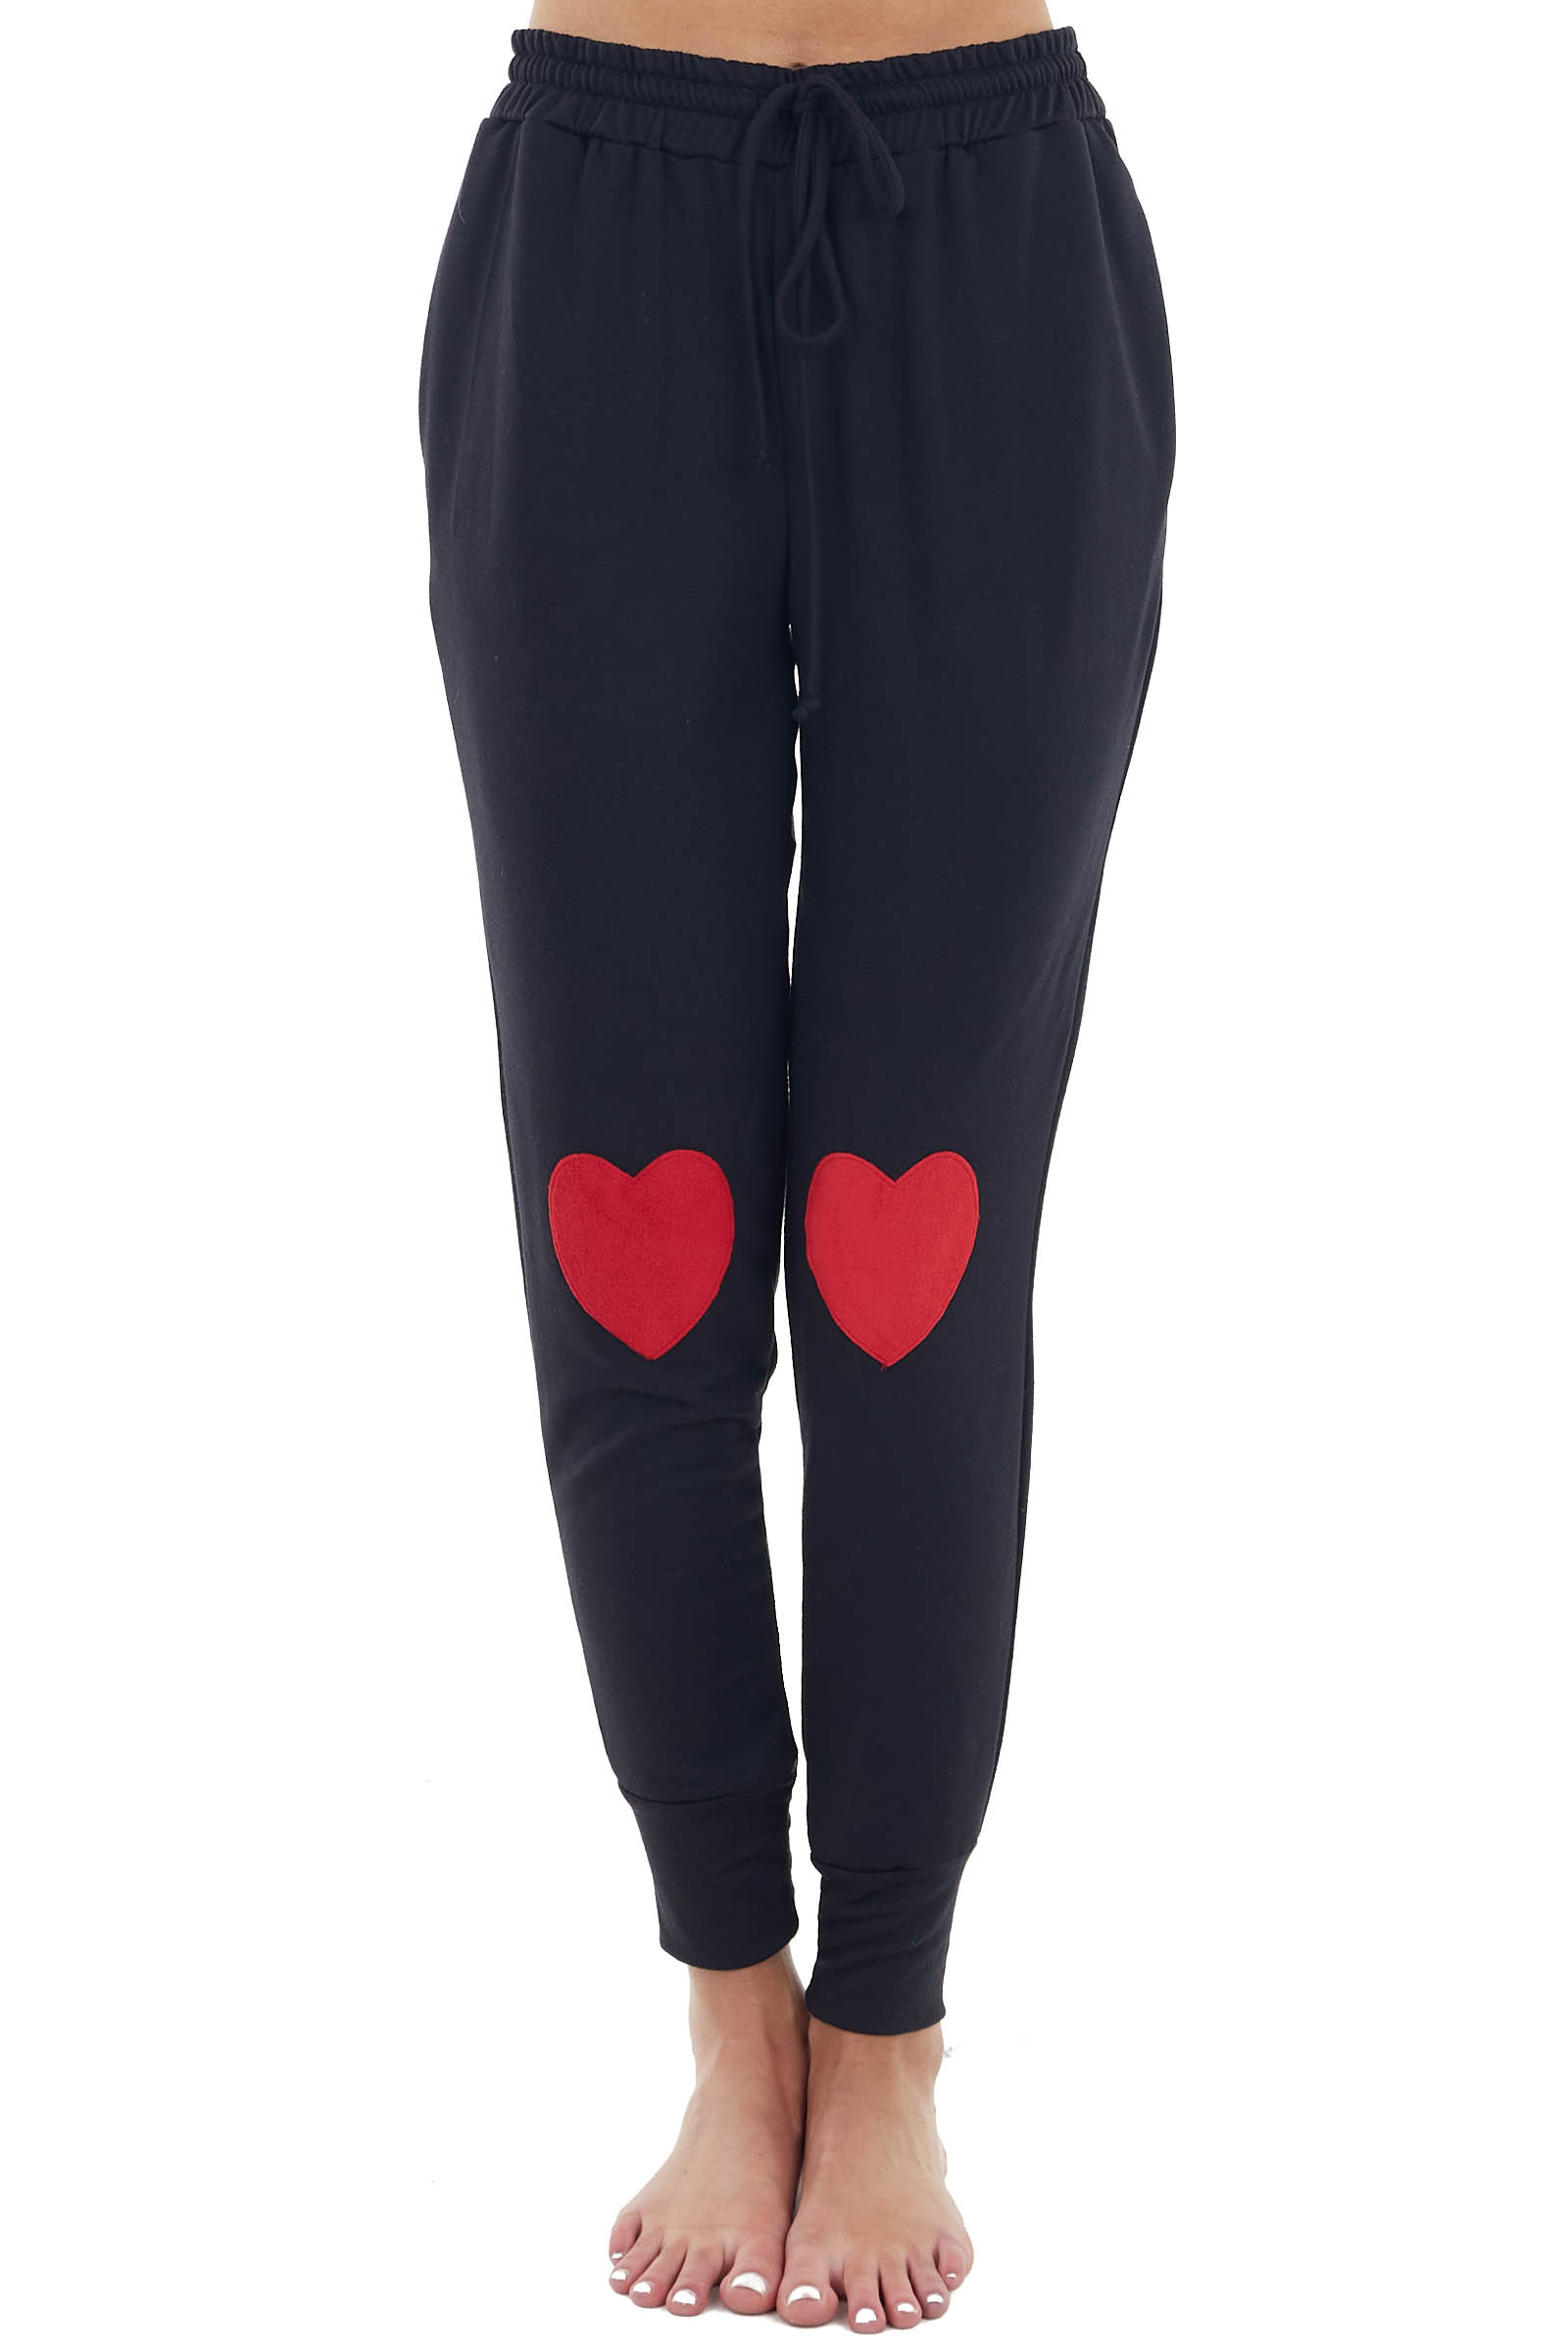 Black and Ruby Sweatpants with Heart and Drawstring Details